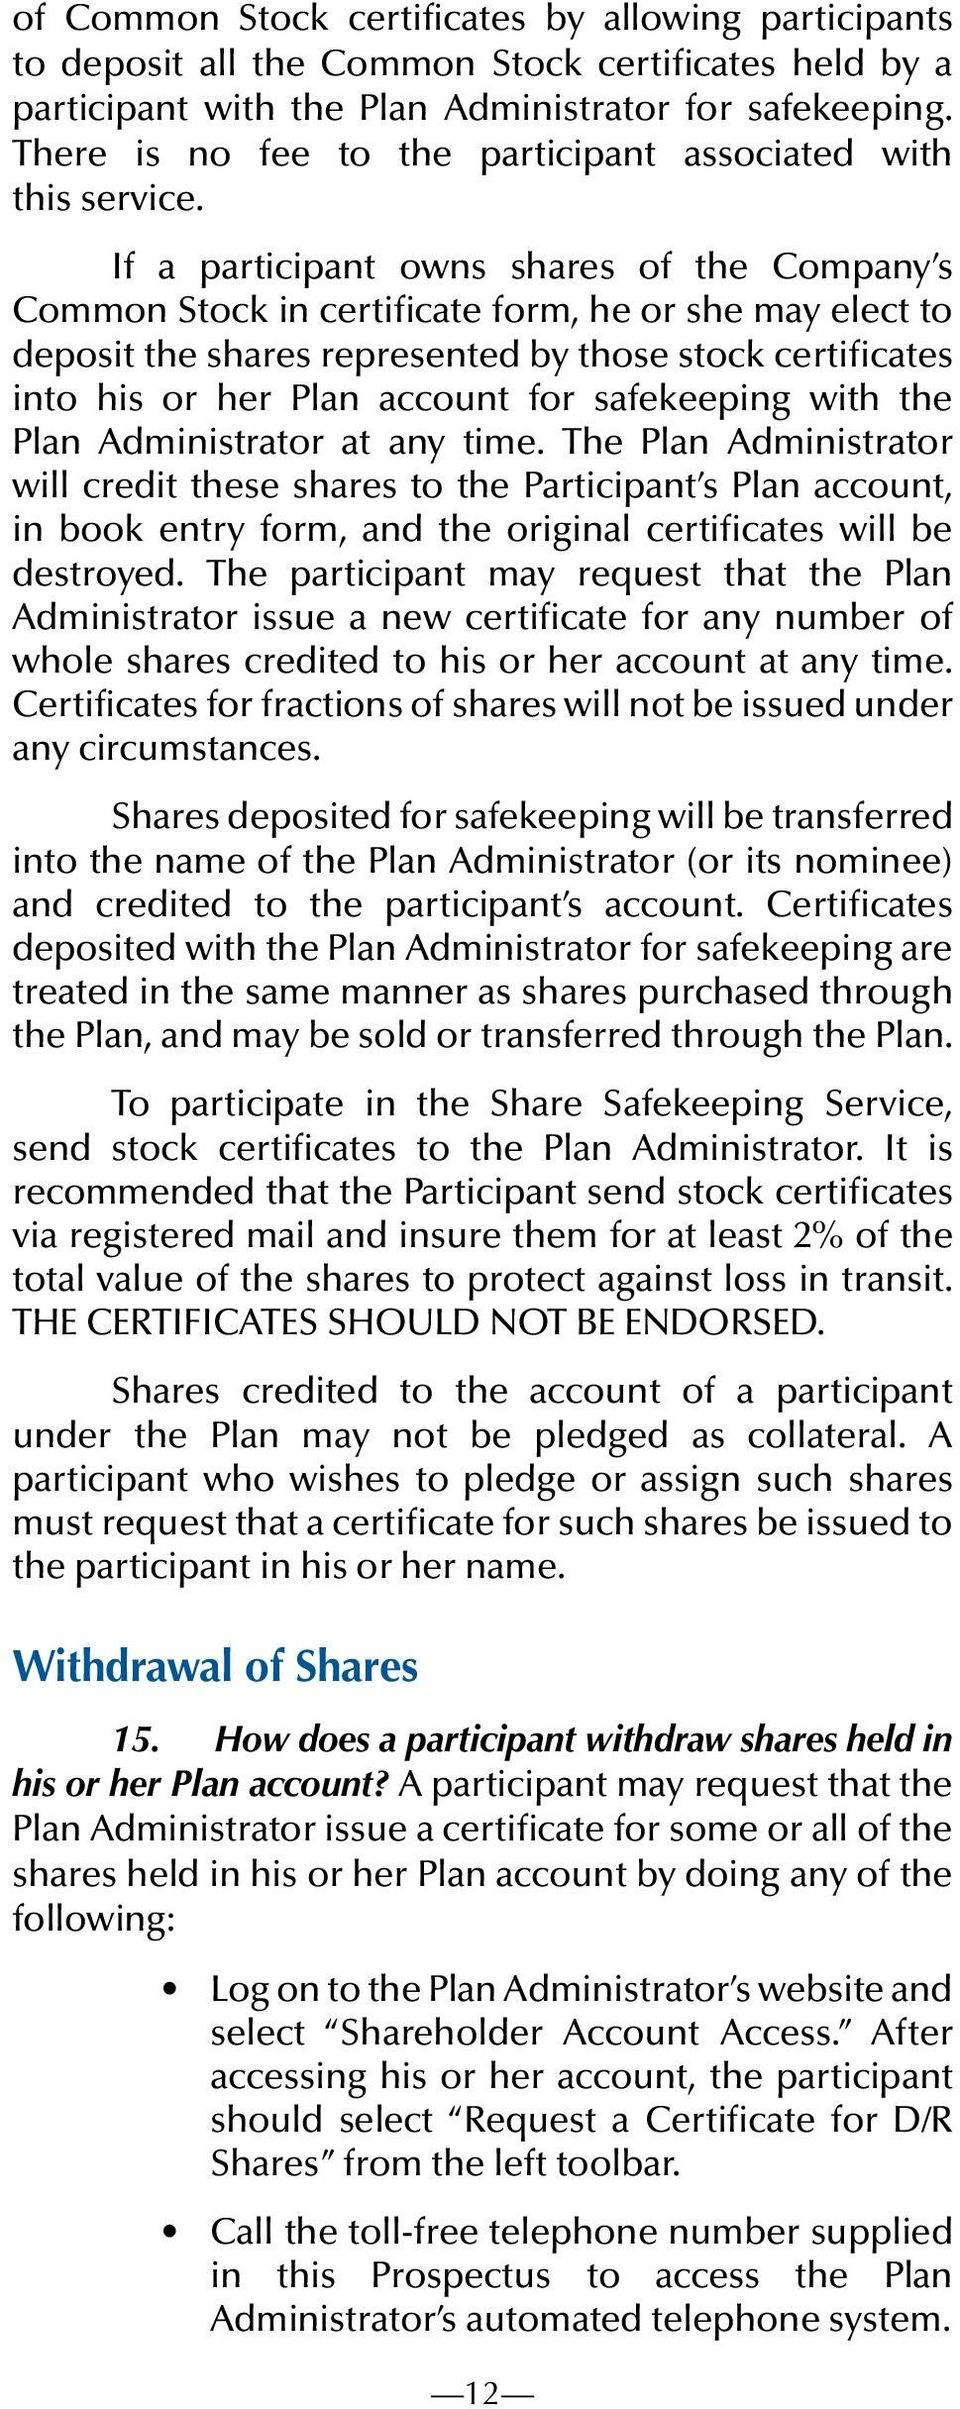 If a participant owns shares of the Company s Common Stock in certificate form, he or she may elect to deposit the shares represented by those stock certificates into his or her Plan account for